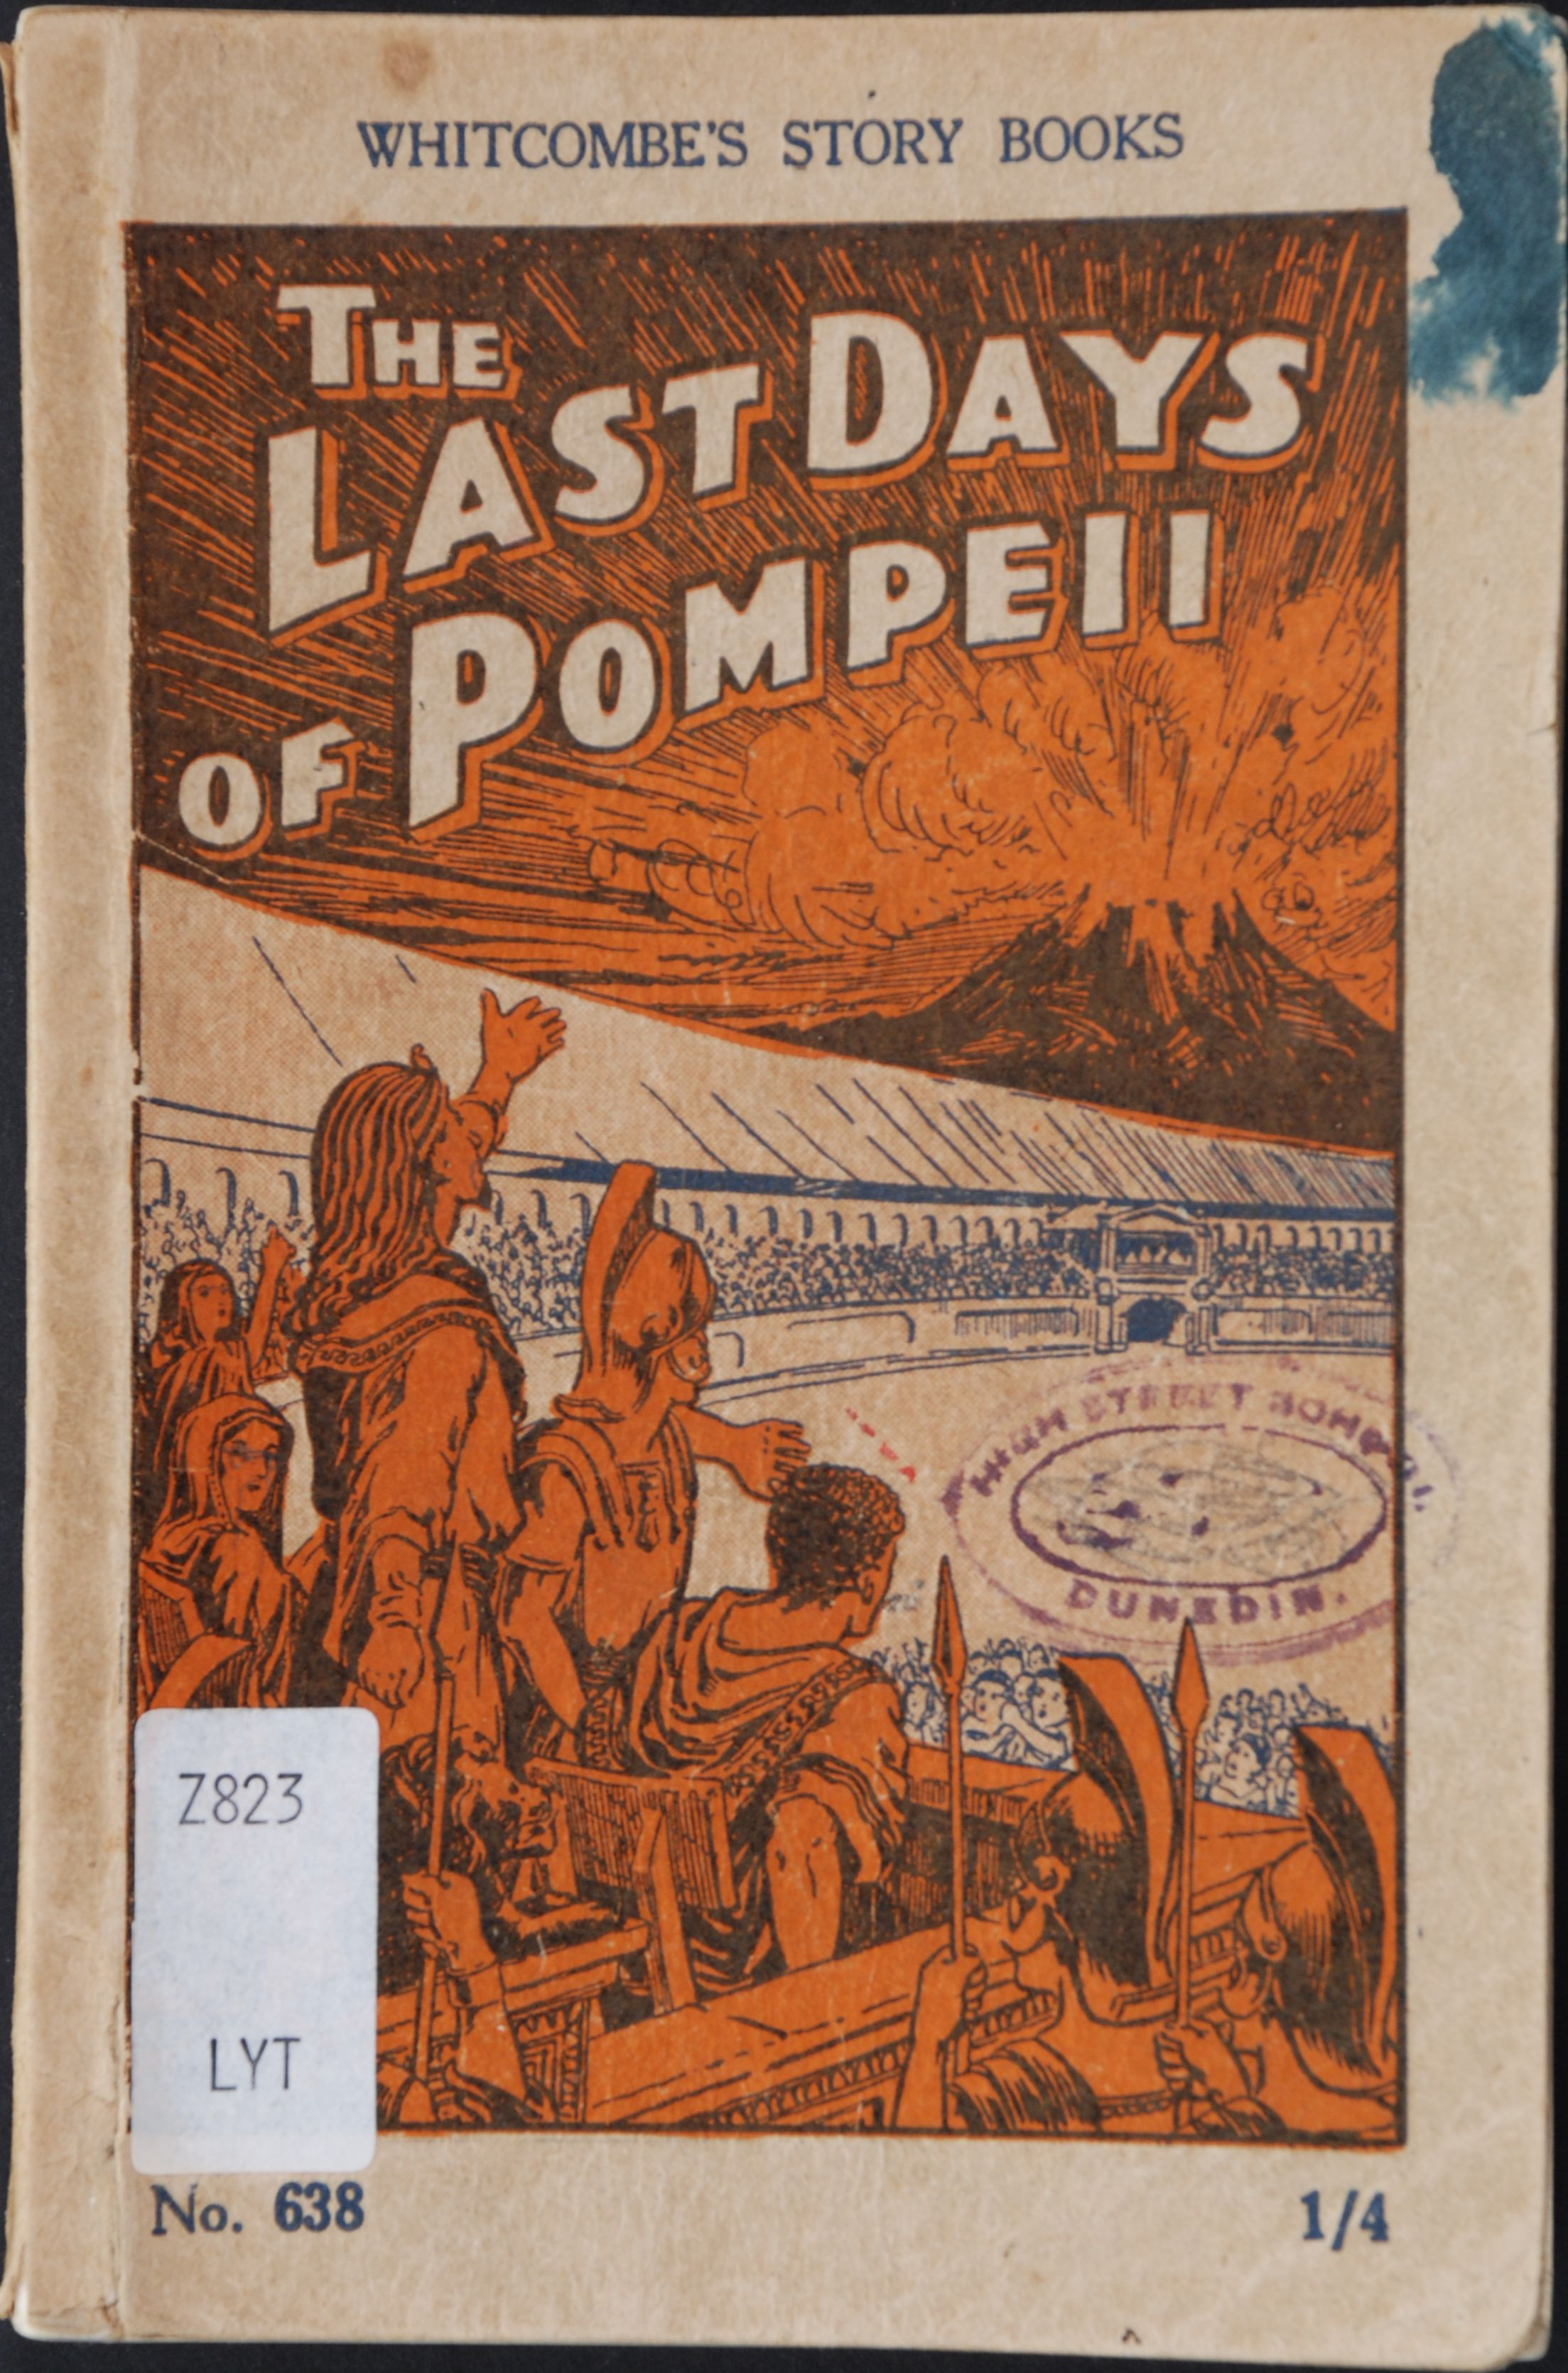 The last days of Pompeii; adapted from the story by Lord Lytton. Auckland [N.Z.]: Whitcombe & Tombs [1930].